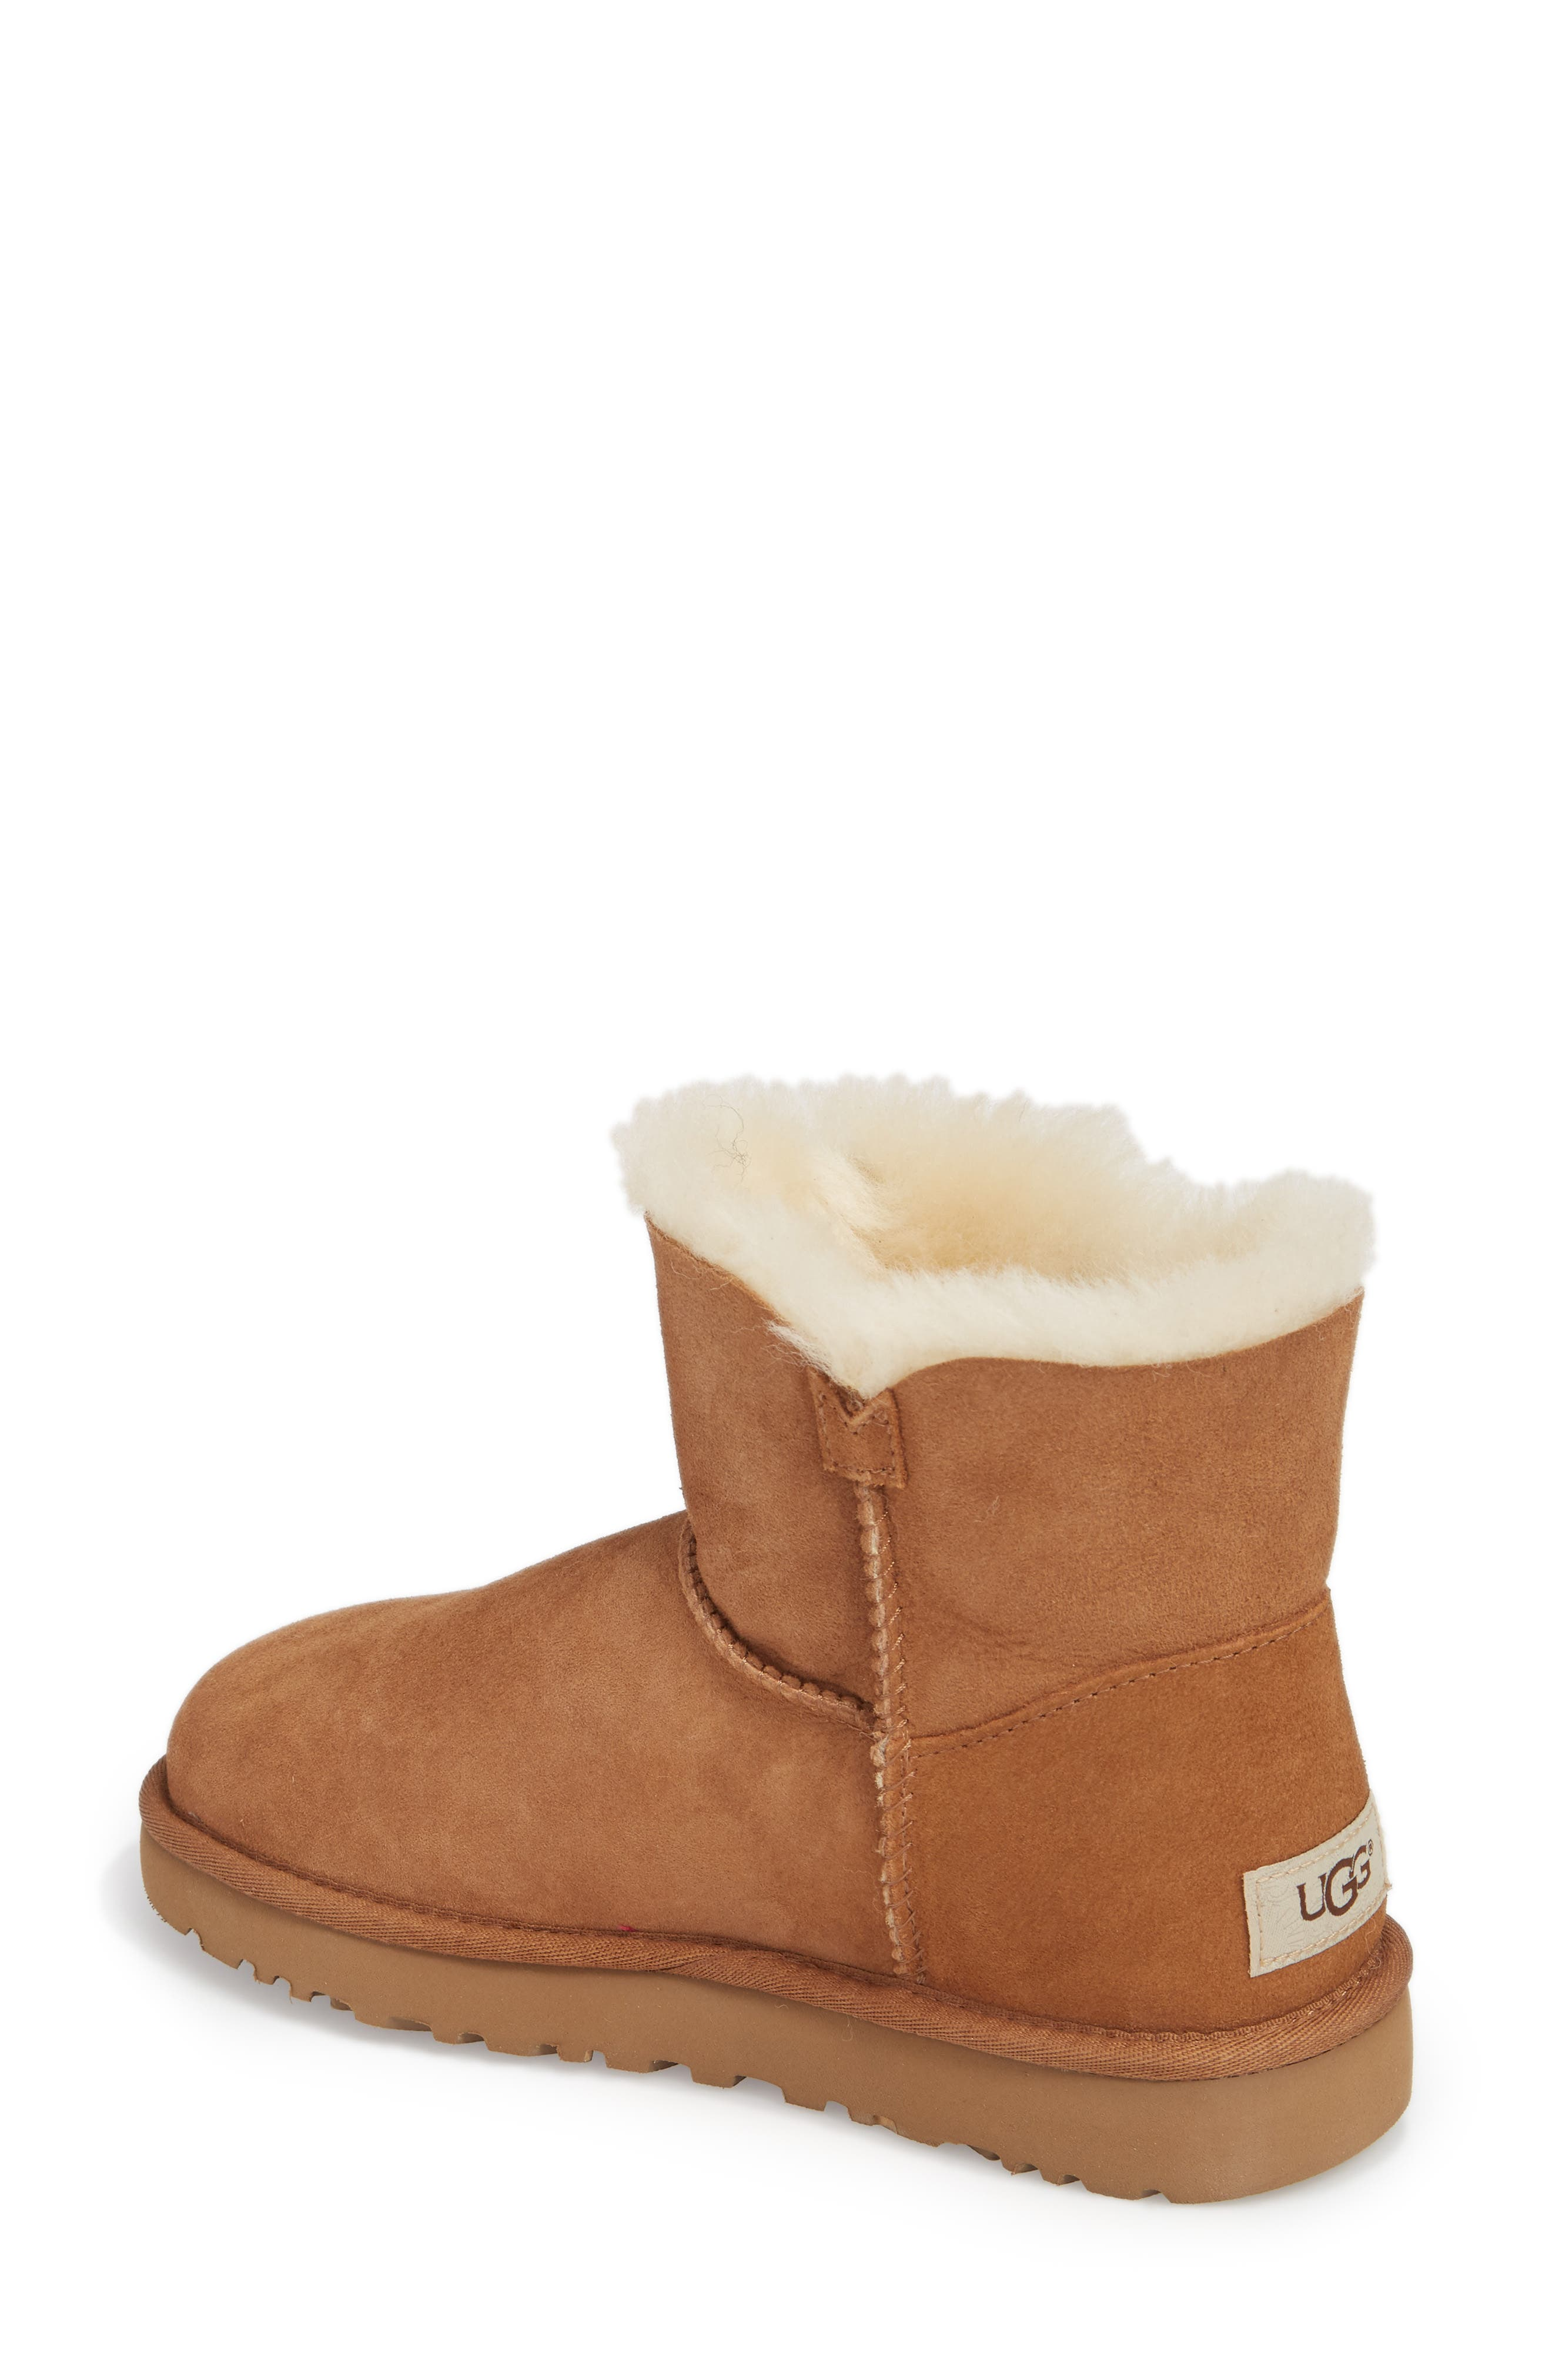 Alternate Image 2  - UGG® Mini Bailey Button Poppy Genuine Shearling Lined Boot (Women)